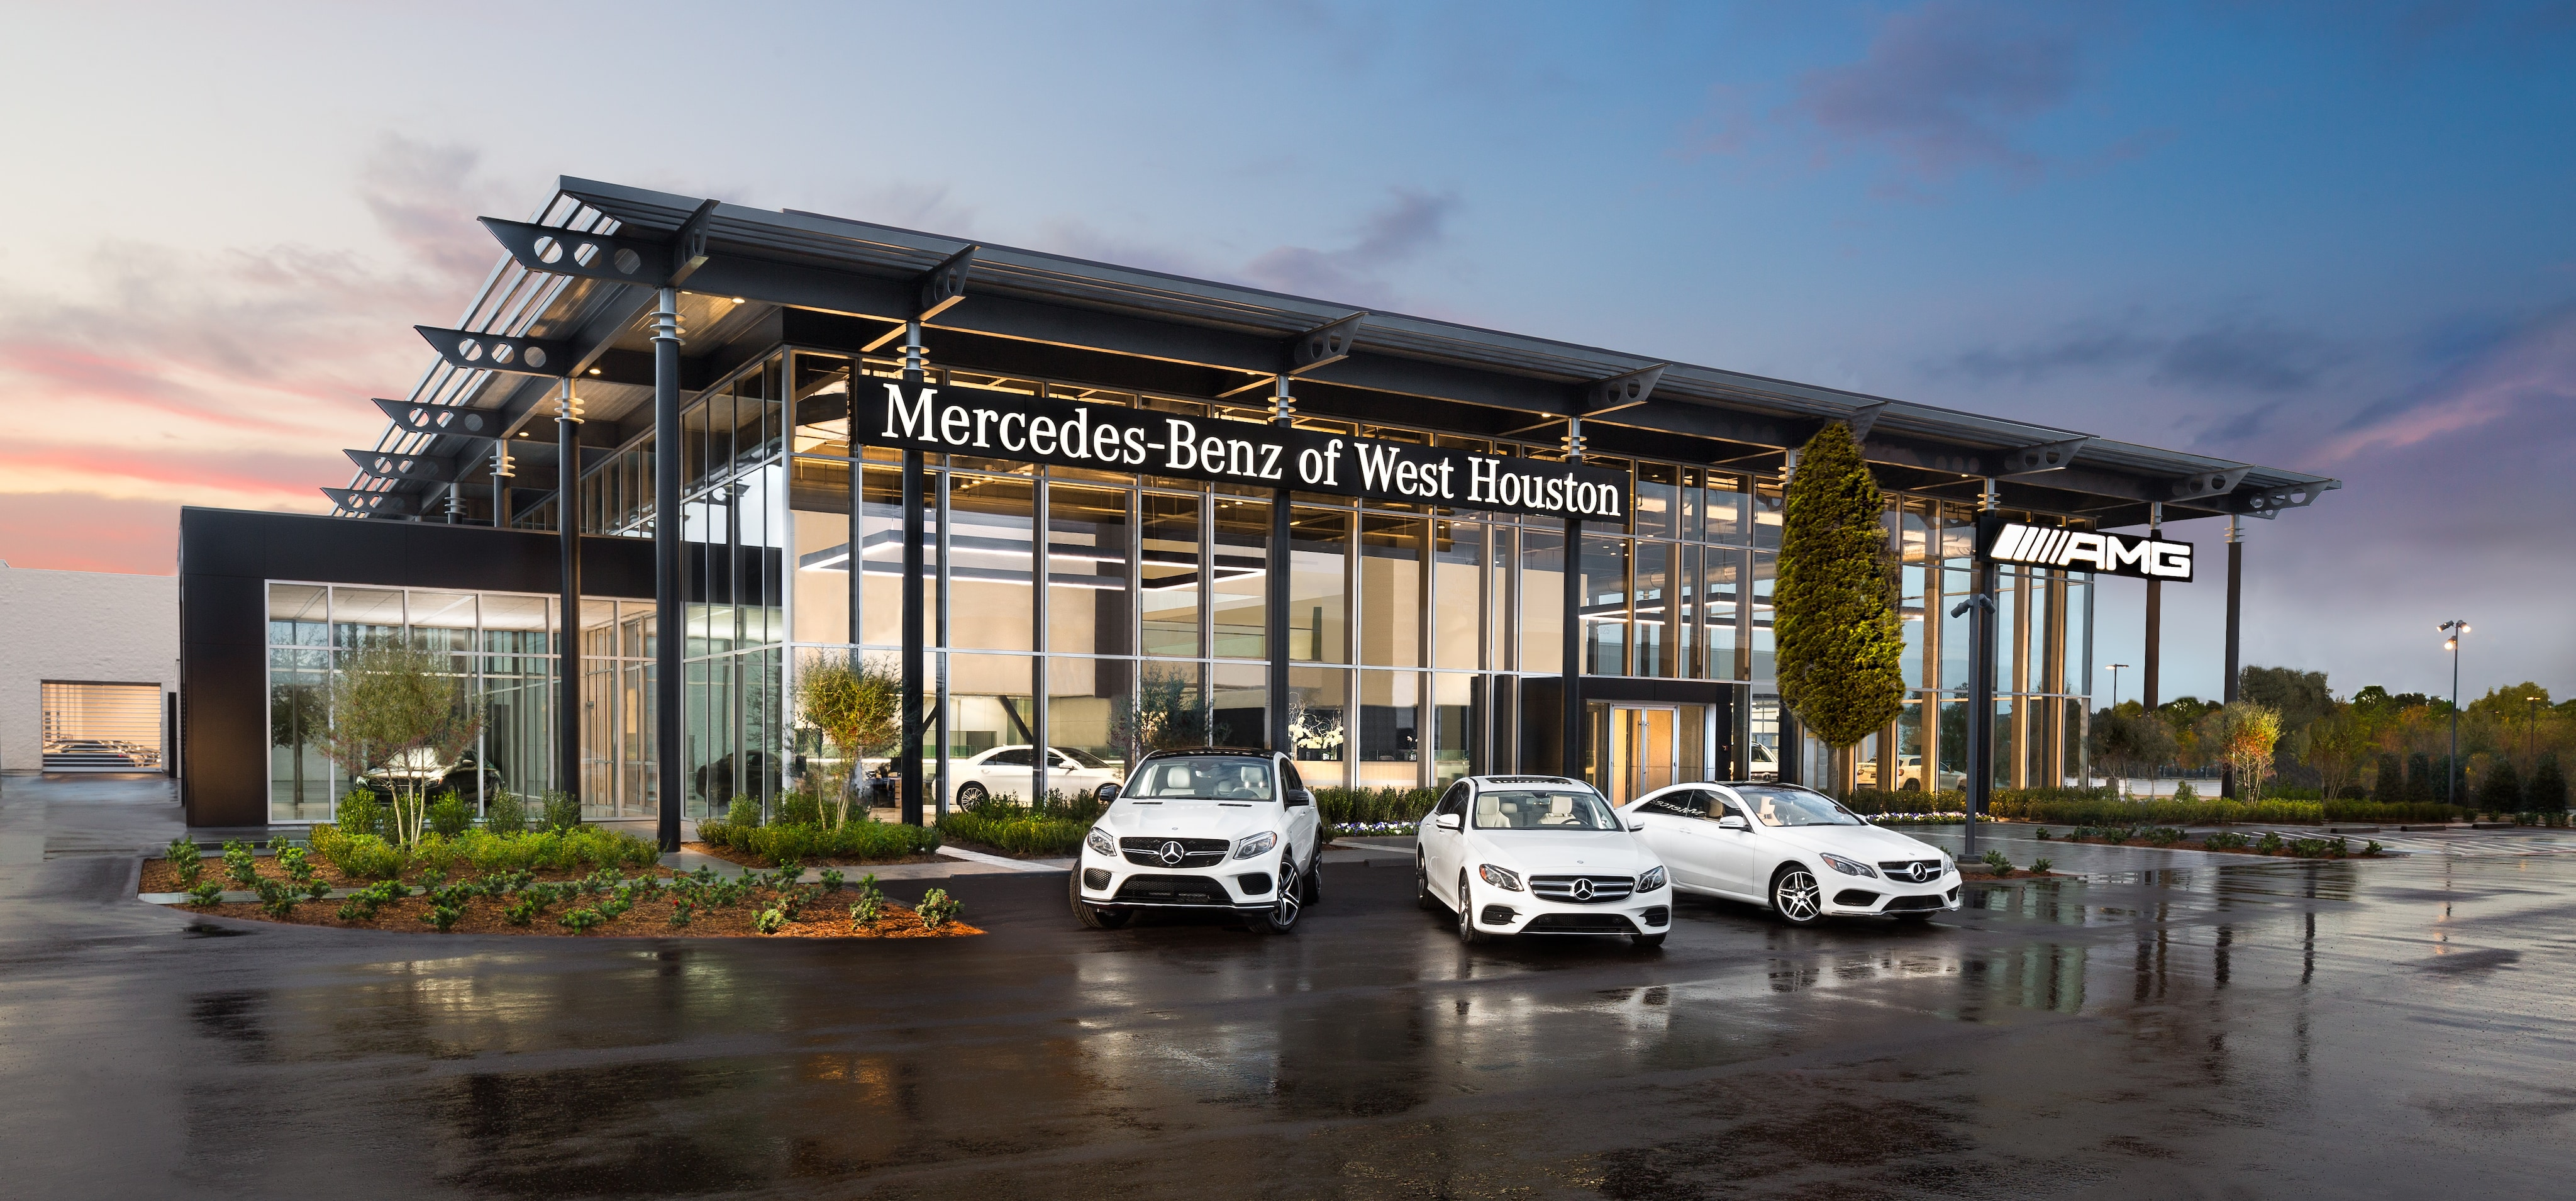 a serving mercedes dealer baltimore used of car catonsville new htm about md benz dealership